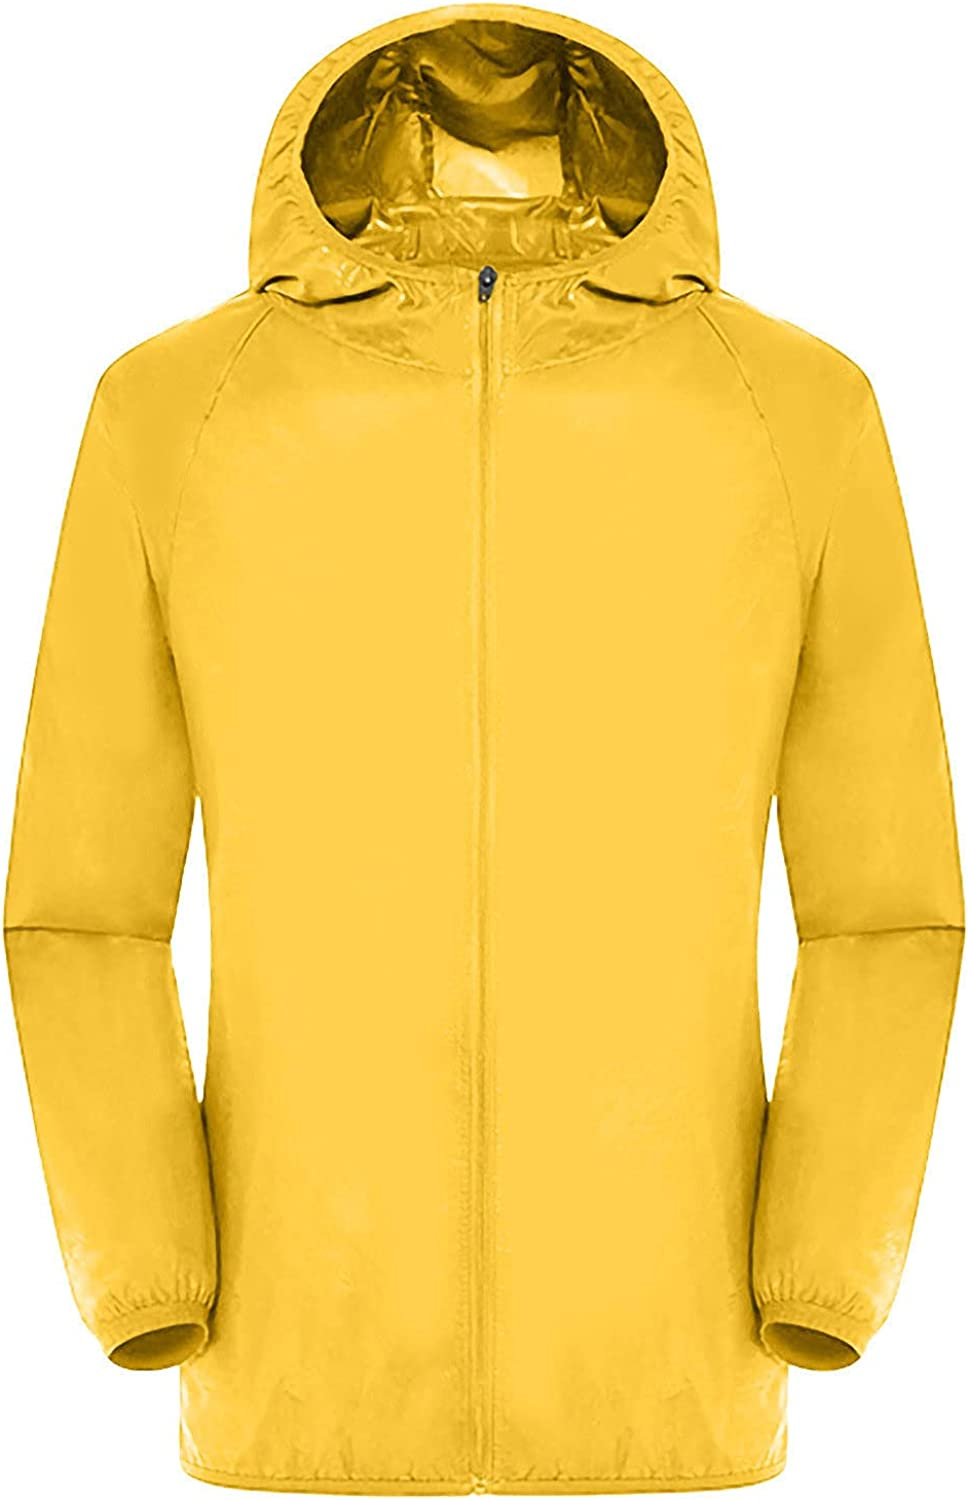 Women's Hooded Thin Jacket Easy Storage Sun Protection Sports Jackets Tops